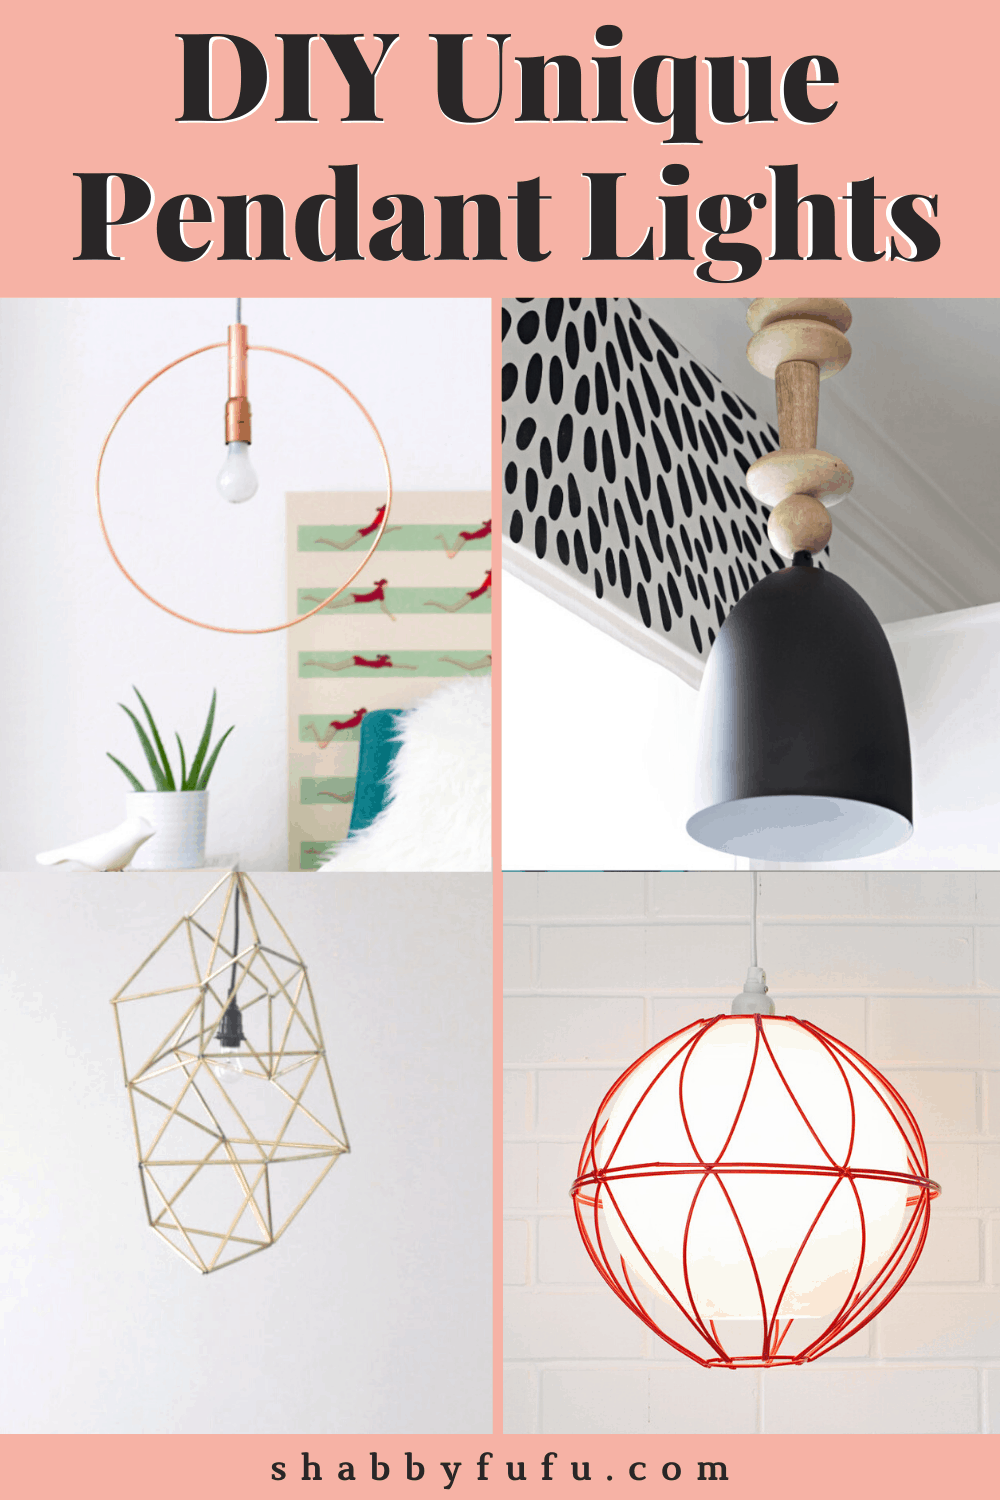 Pin On Trending Decorating Ideas Diy Hacks And Crafts